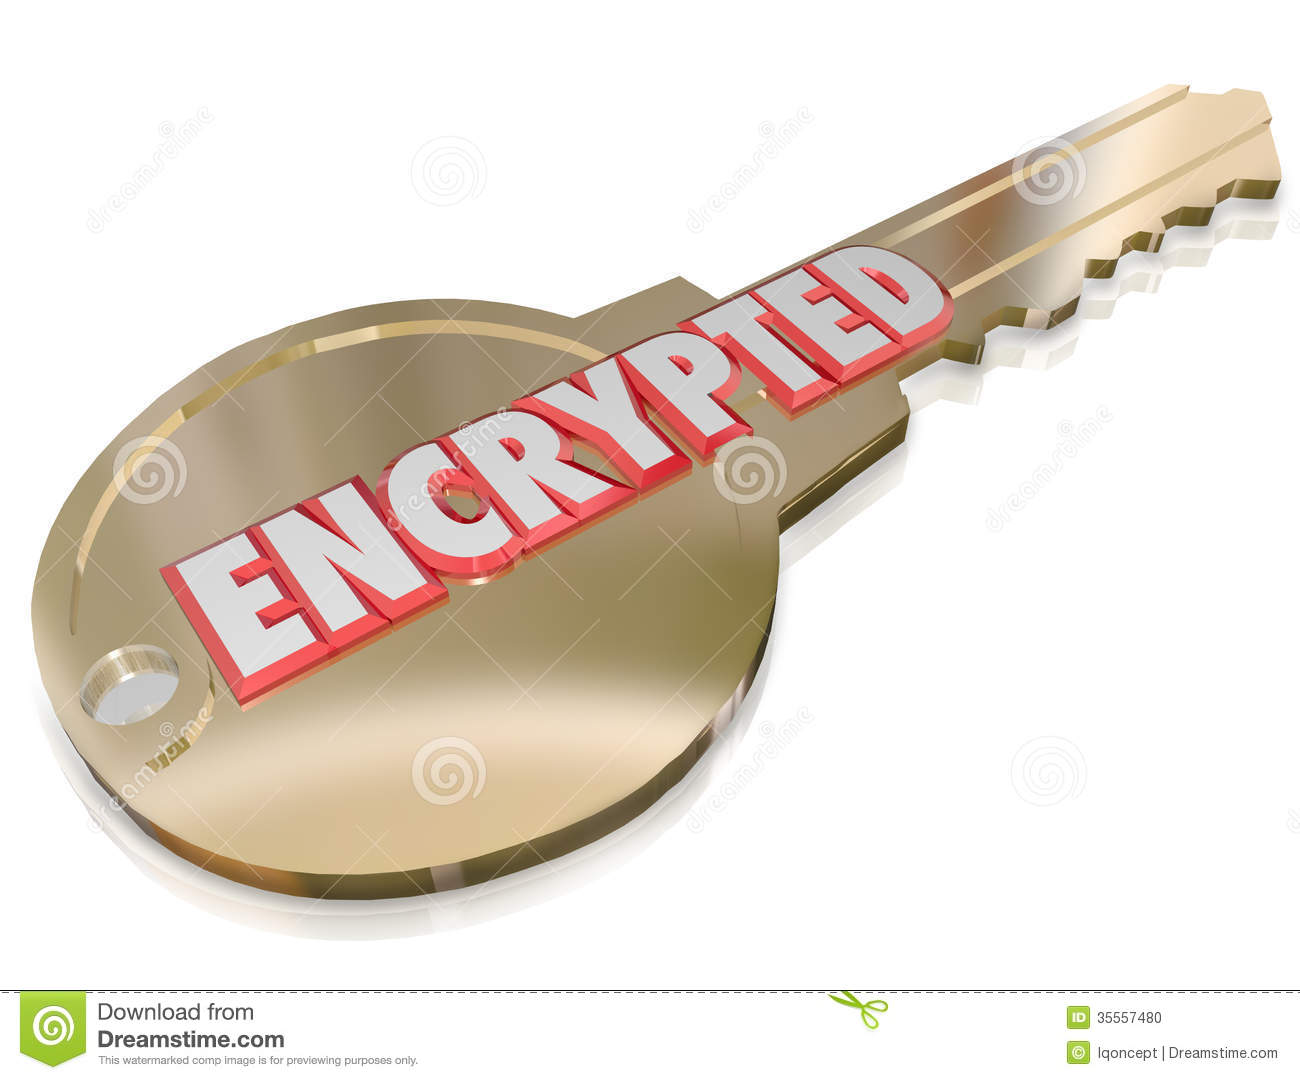 Encrypted Key Computer Cyber Crime Prevention Security Stock Photo.